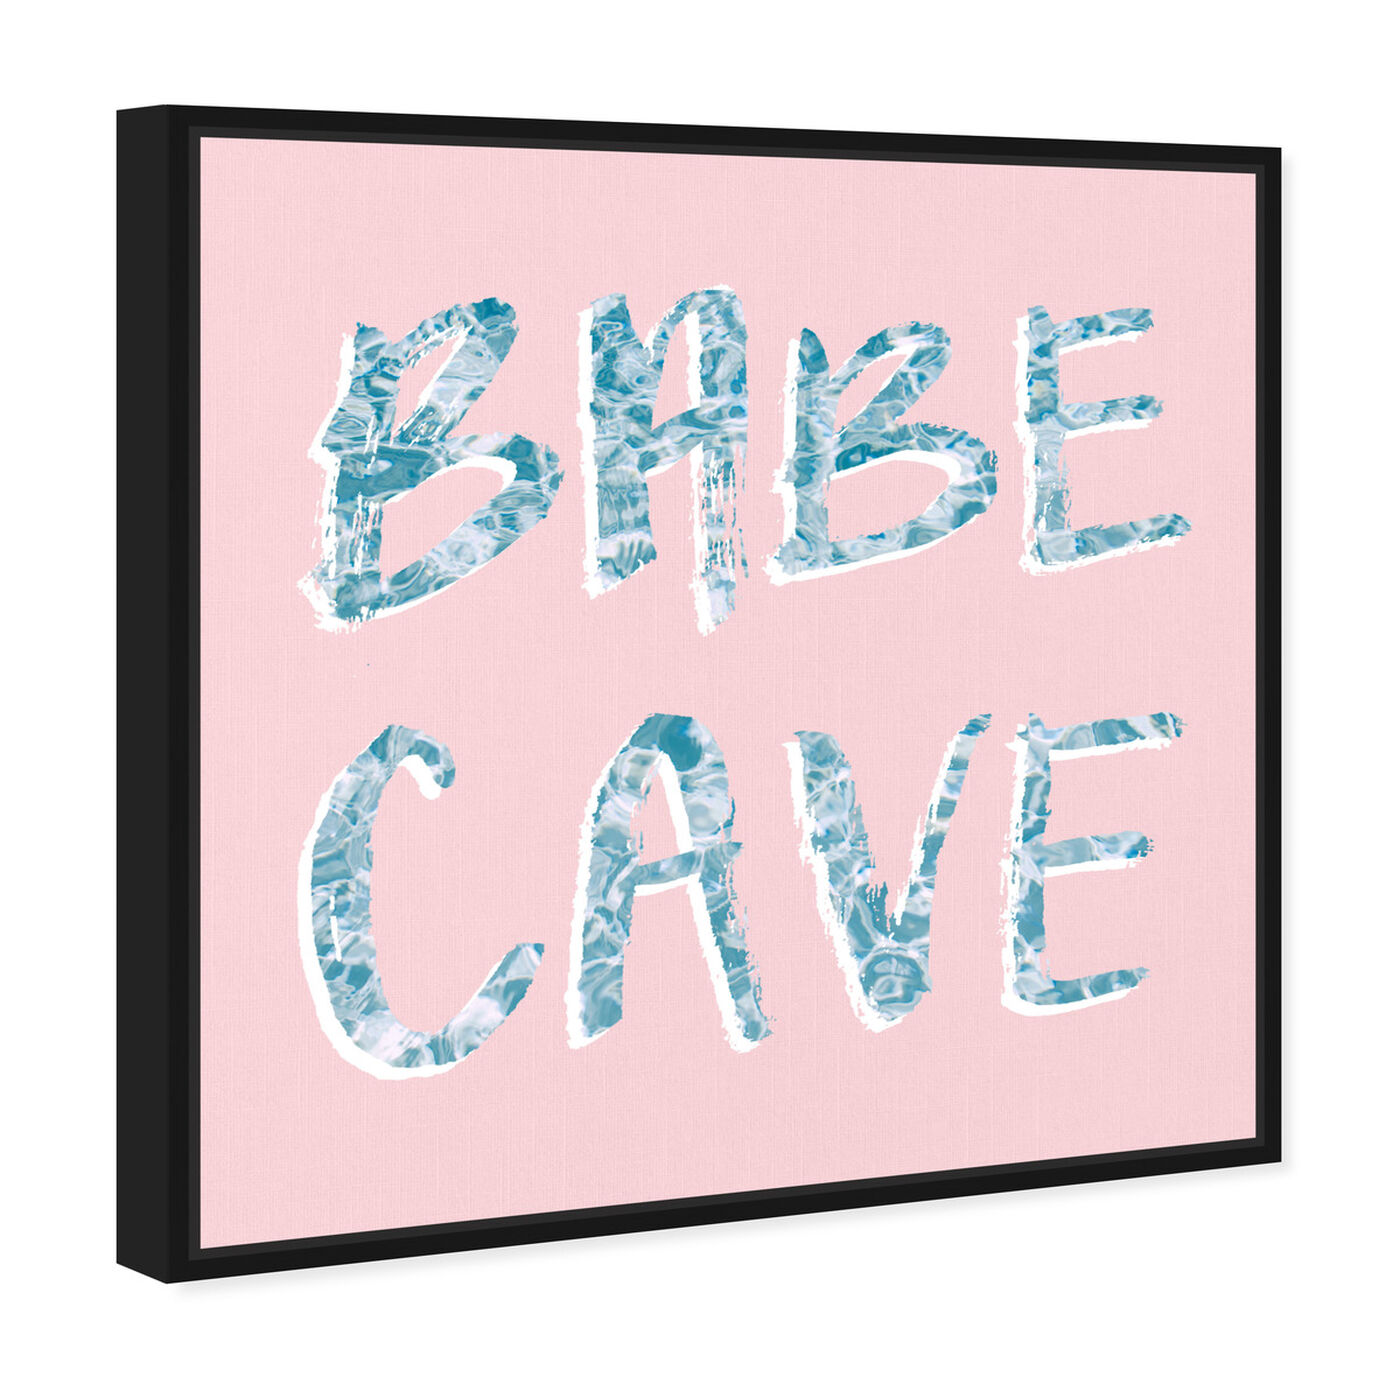 Angled view of Babe Cave Pool Party featuring typography and quotes and empowered women quotes and sayings art.